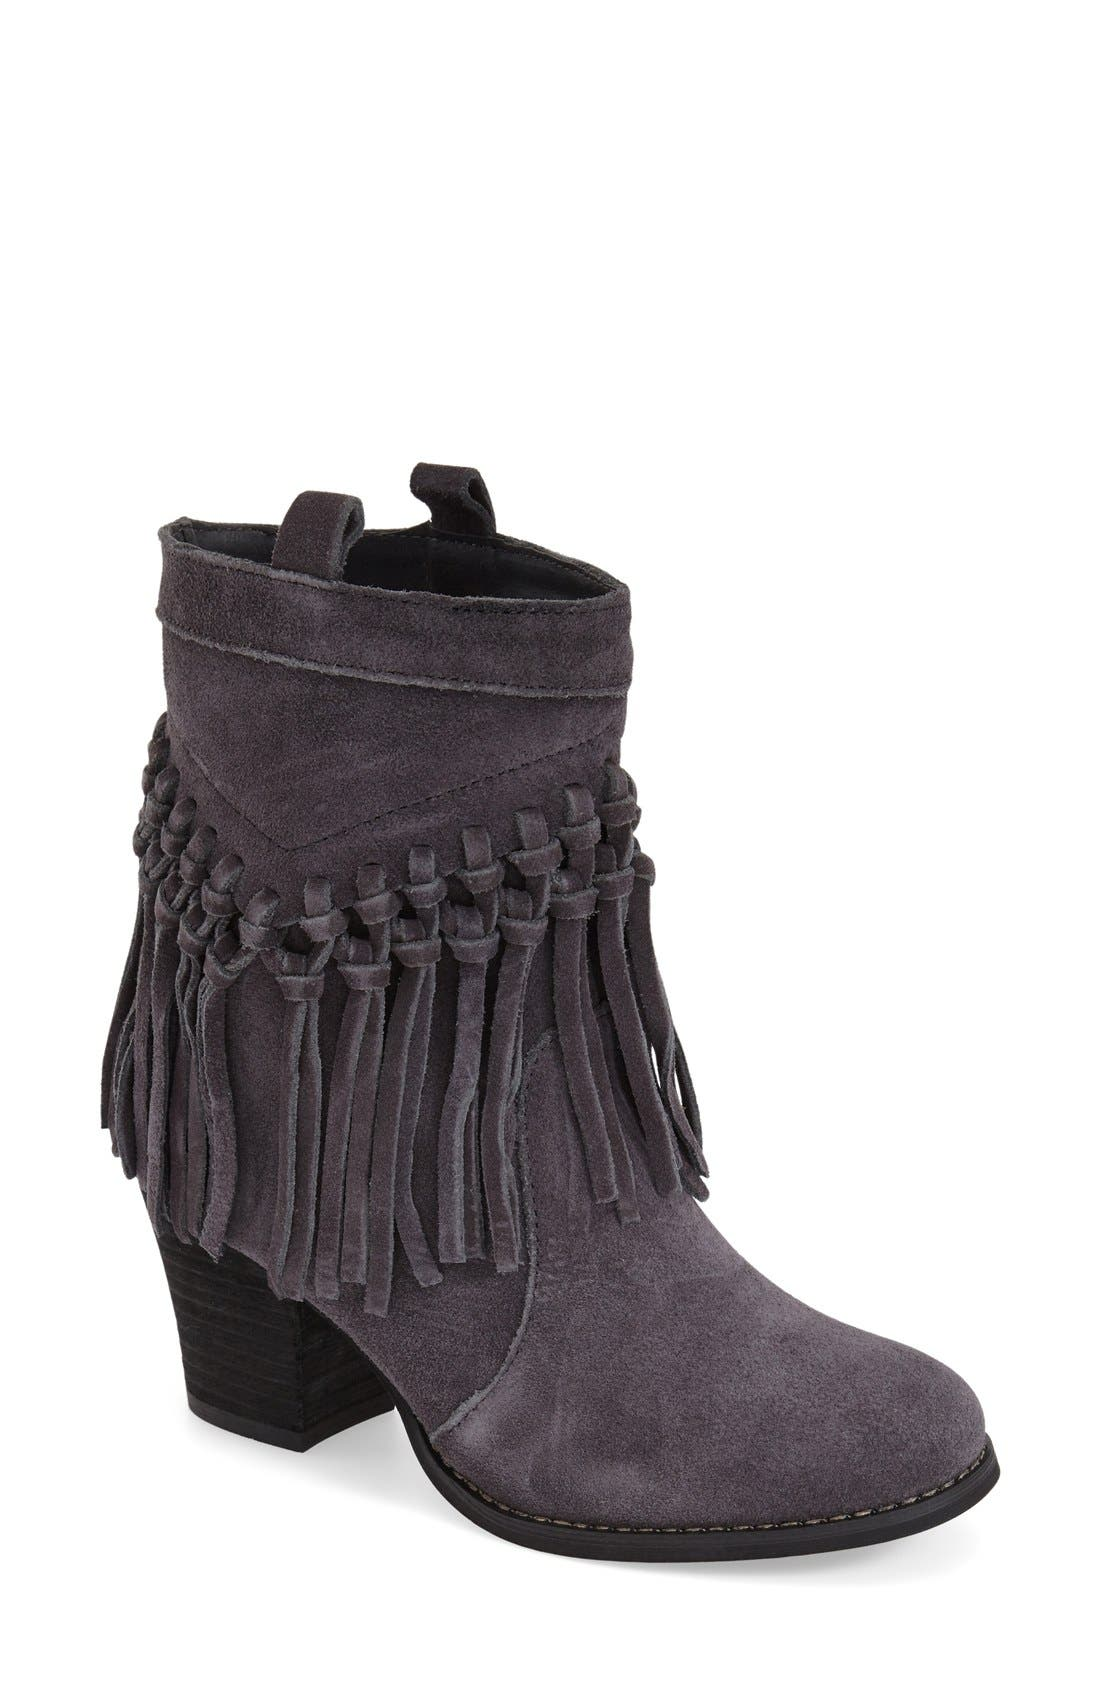 Alternate Image 1 Selected - Sbicca 'Sound' Fringe Suede Bootie (Women)